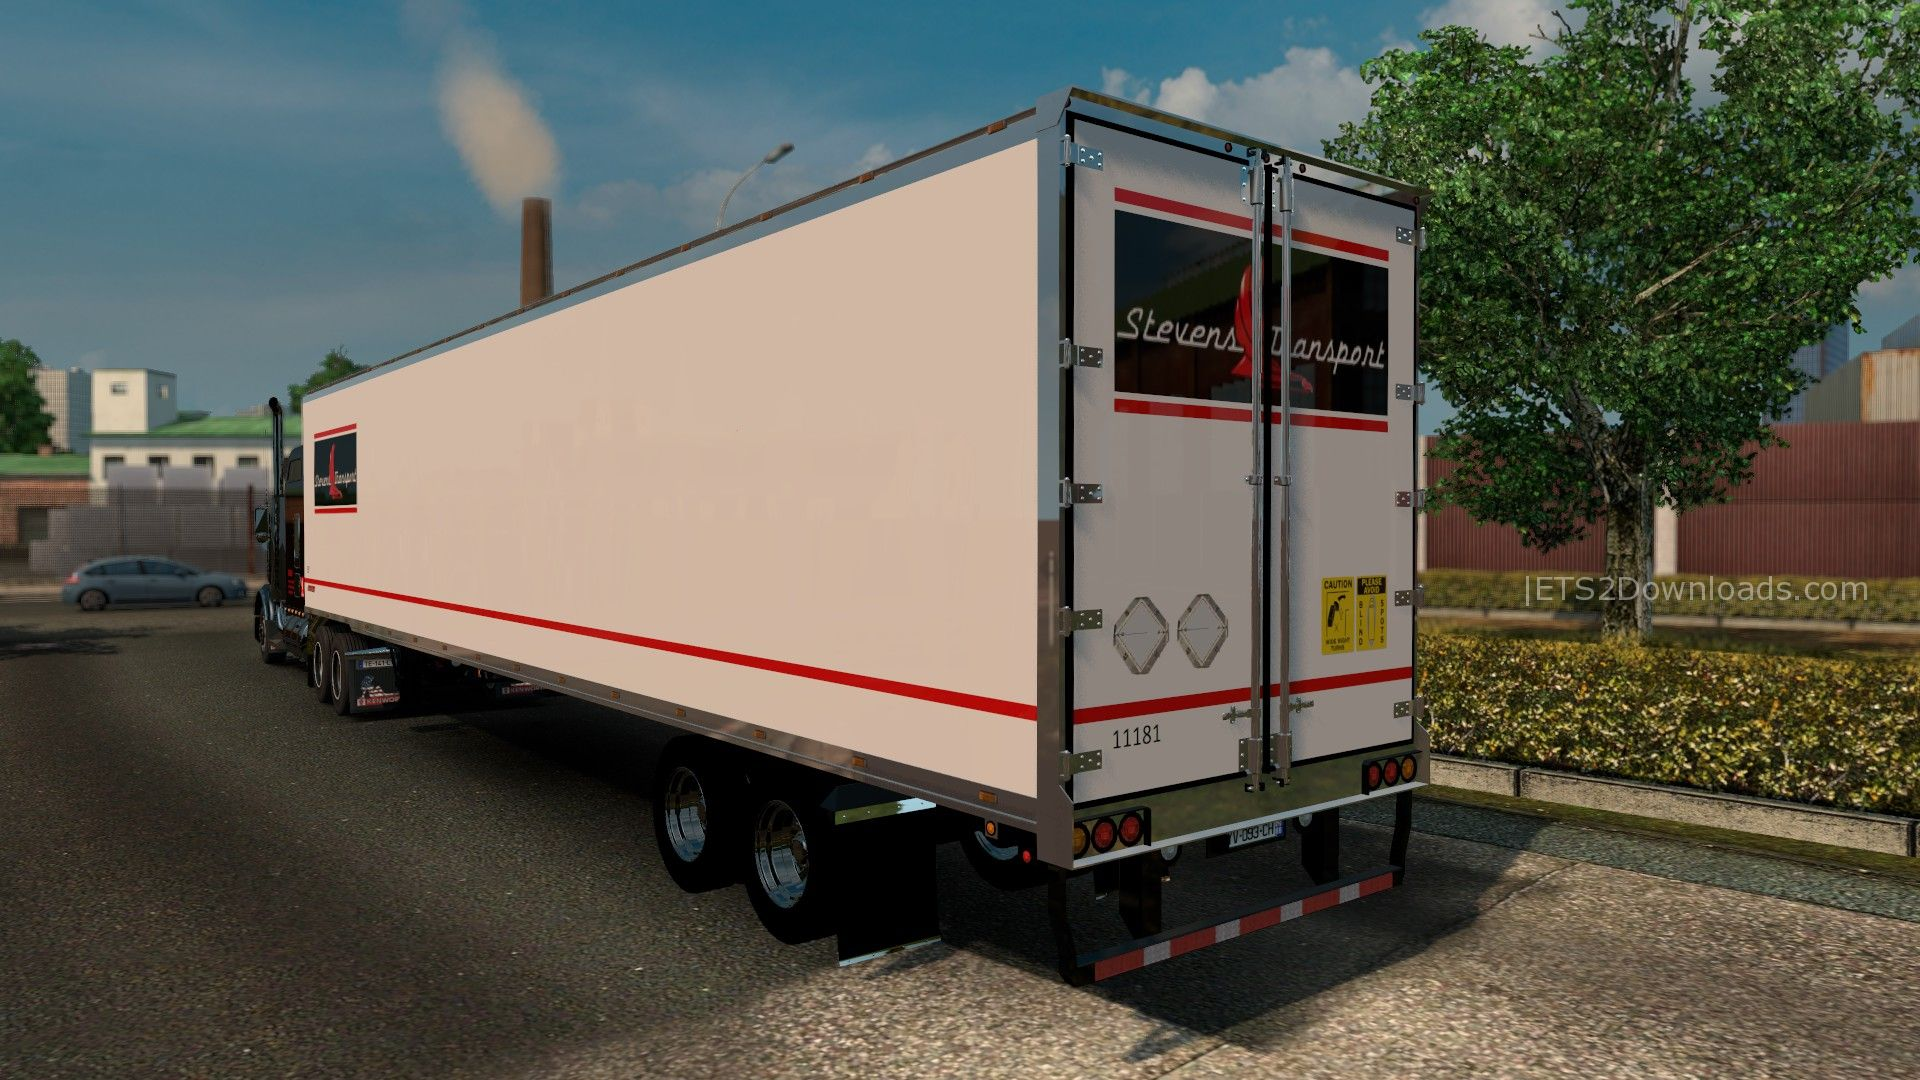 stevens-transport-skin-for-kenworth-t800